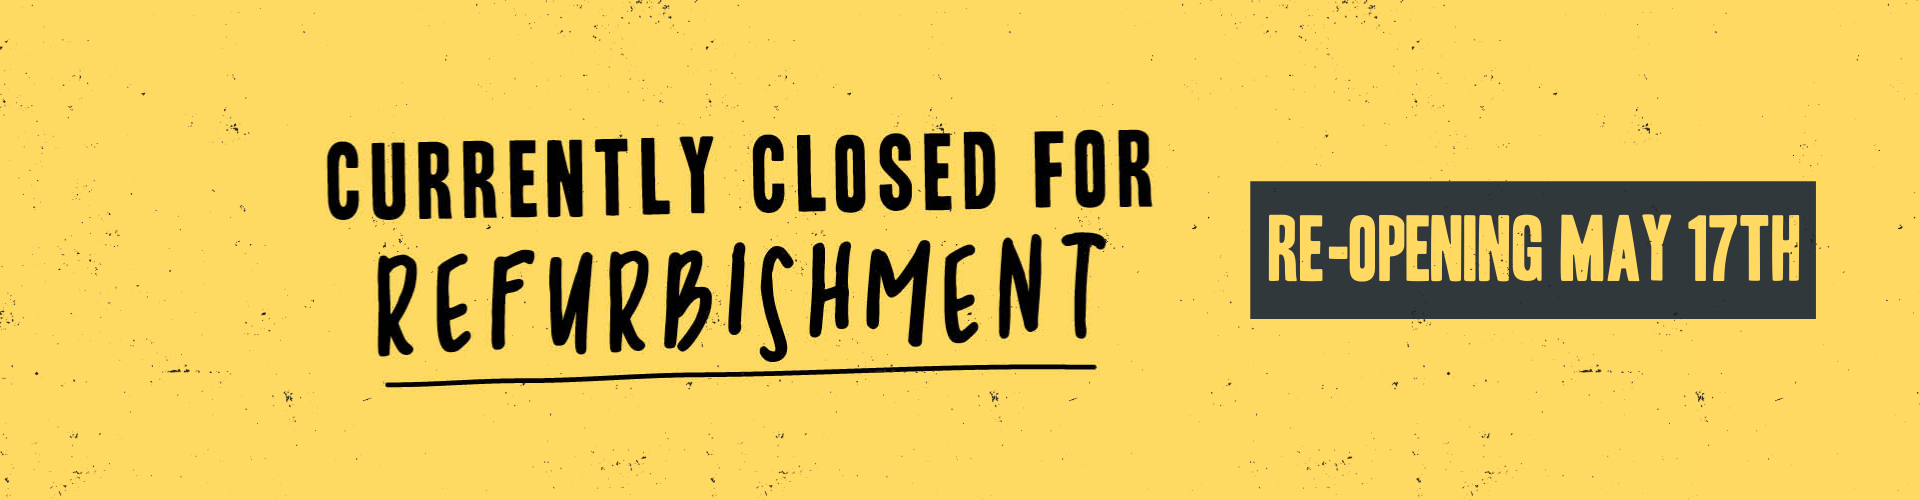 We are currently closed for refurbishment and will re-open on May 17th